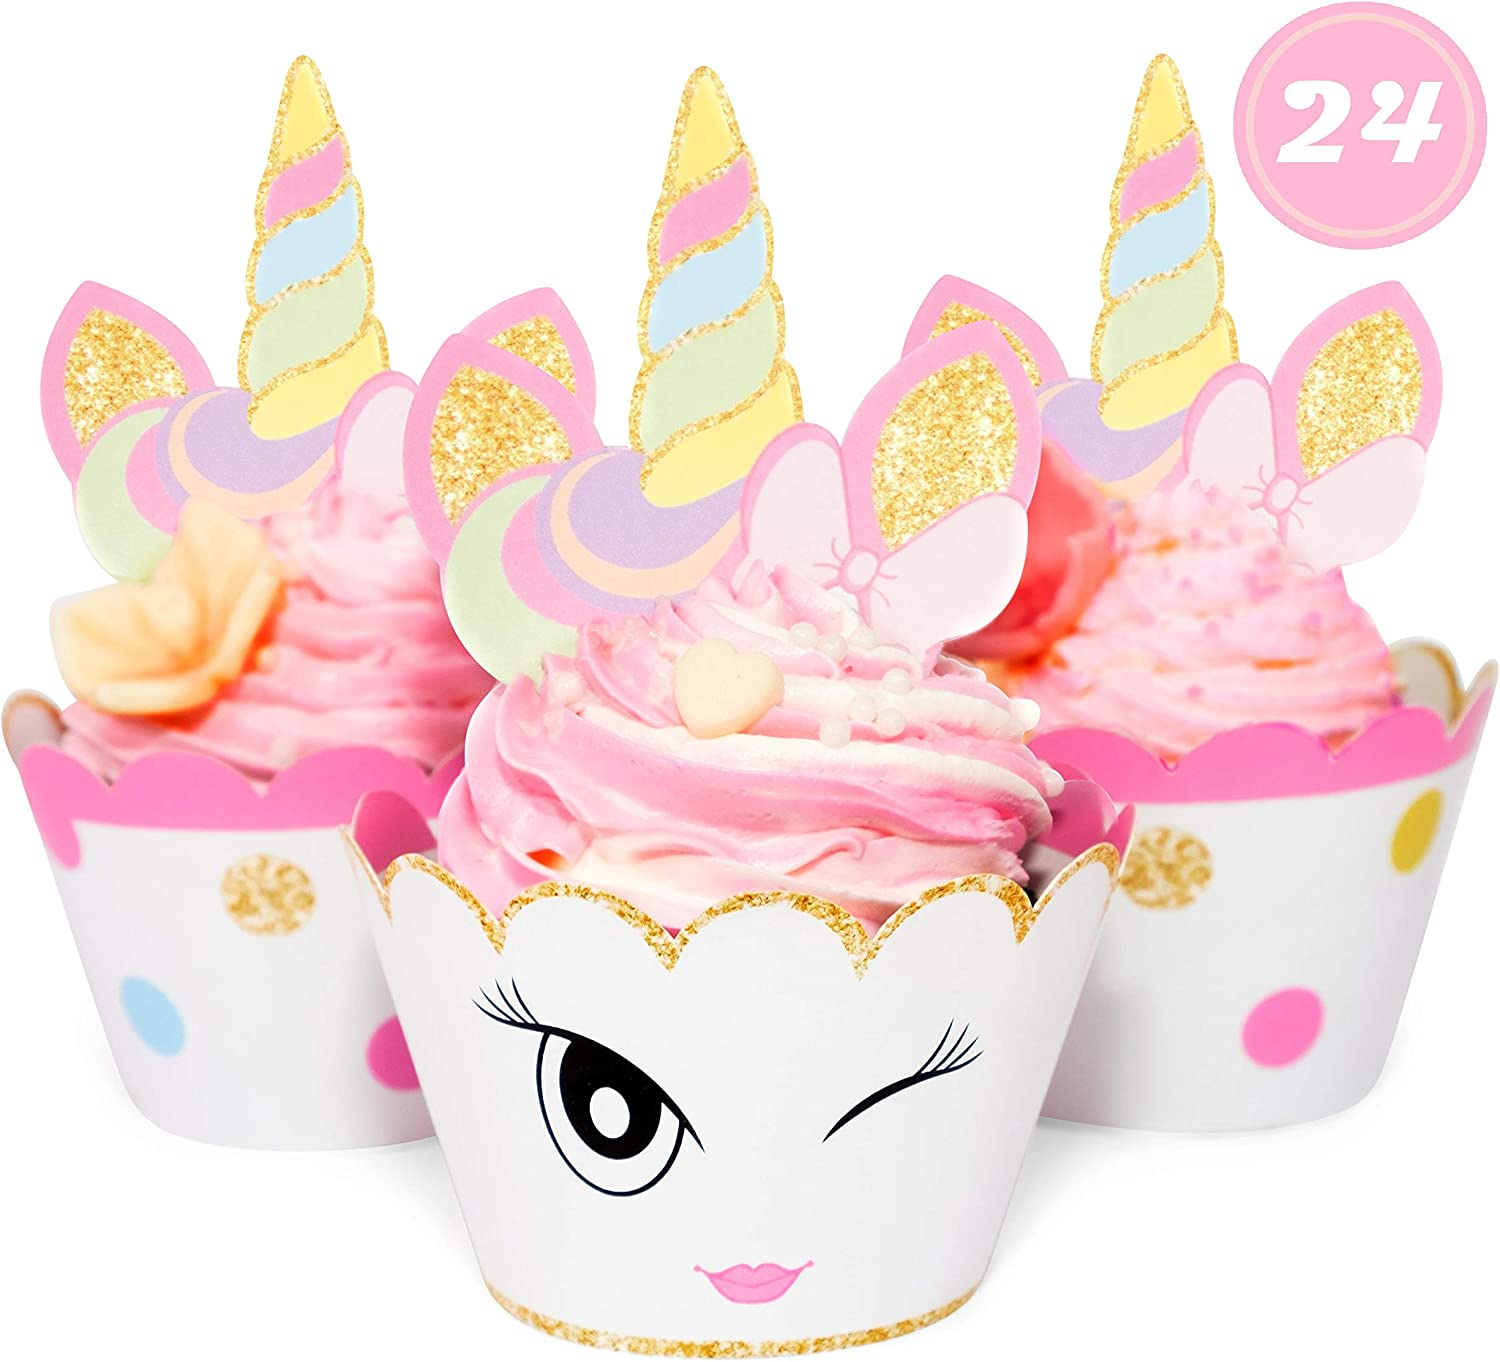 Unicorn Glitter Cupcake Toppers + Wrappers - Set of 24 by Just For Fun Shop | Girls Birthday Party Supplies - Rainbow and Gold Glitter Decorations | Cute favors for Baby Shower